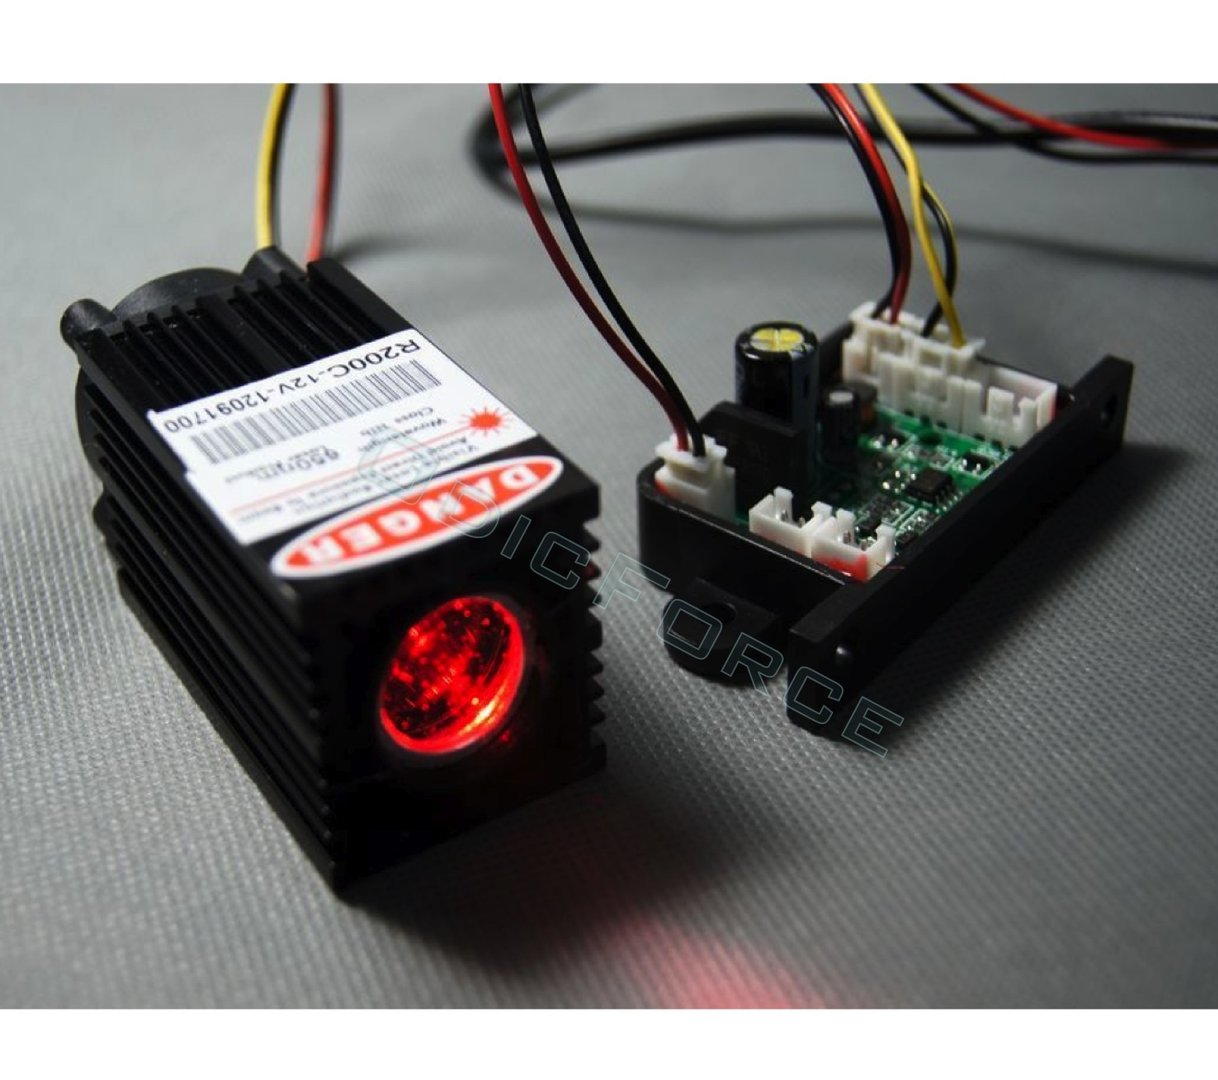 200mW Wide Beam (15mm) 650nm Red Laser Module with TTL Modulation and Fan Cooled Laser Head (12V) (R200C)